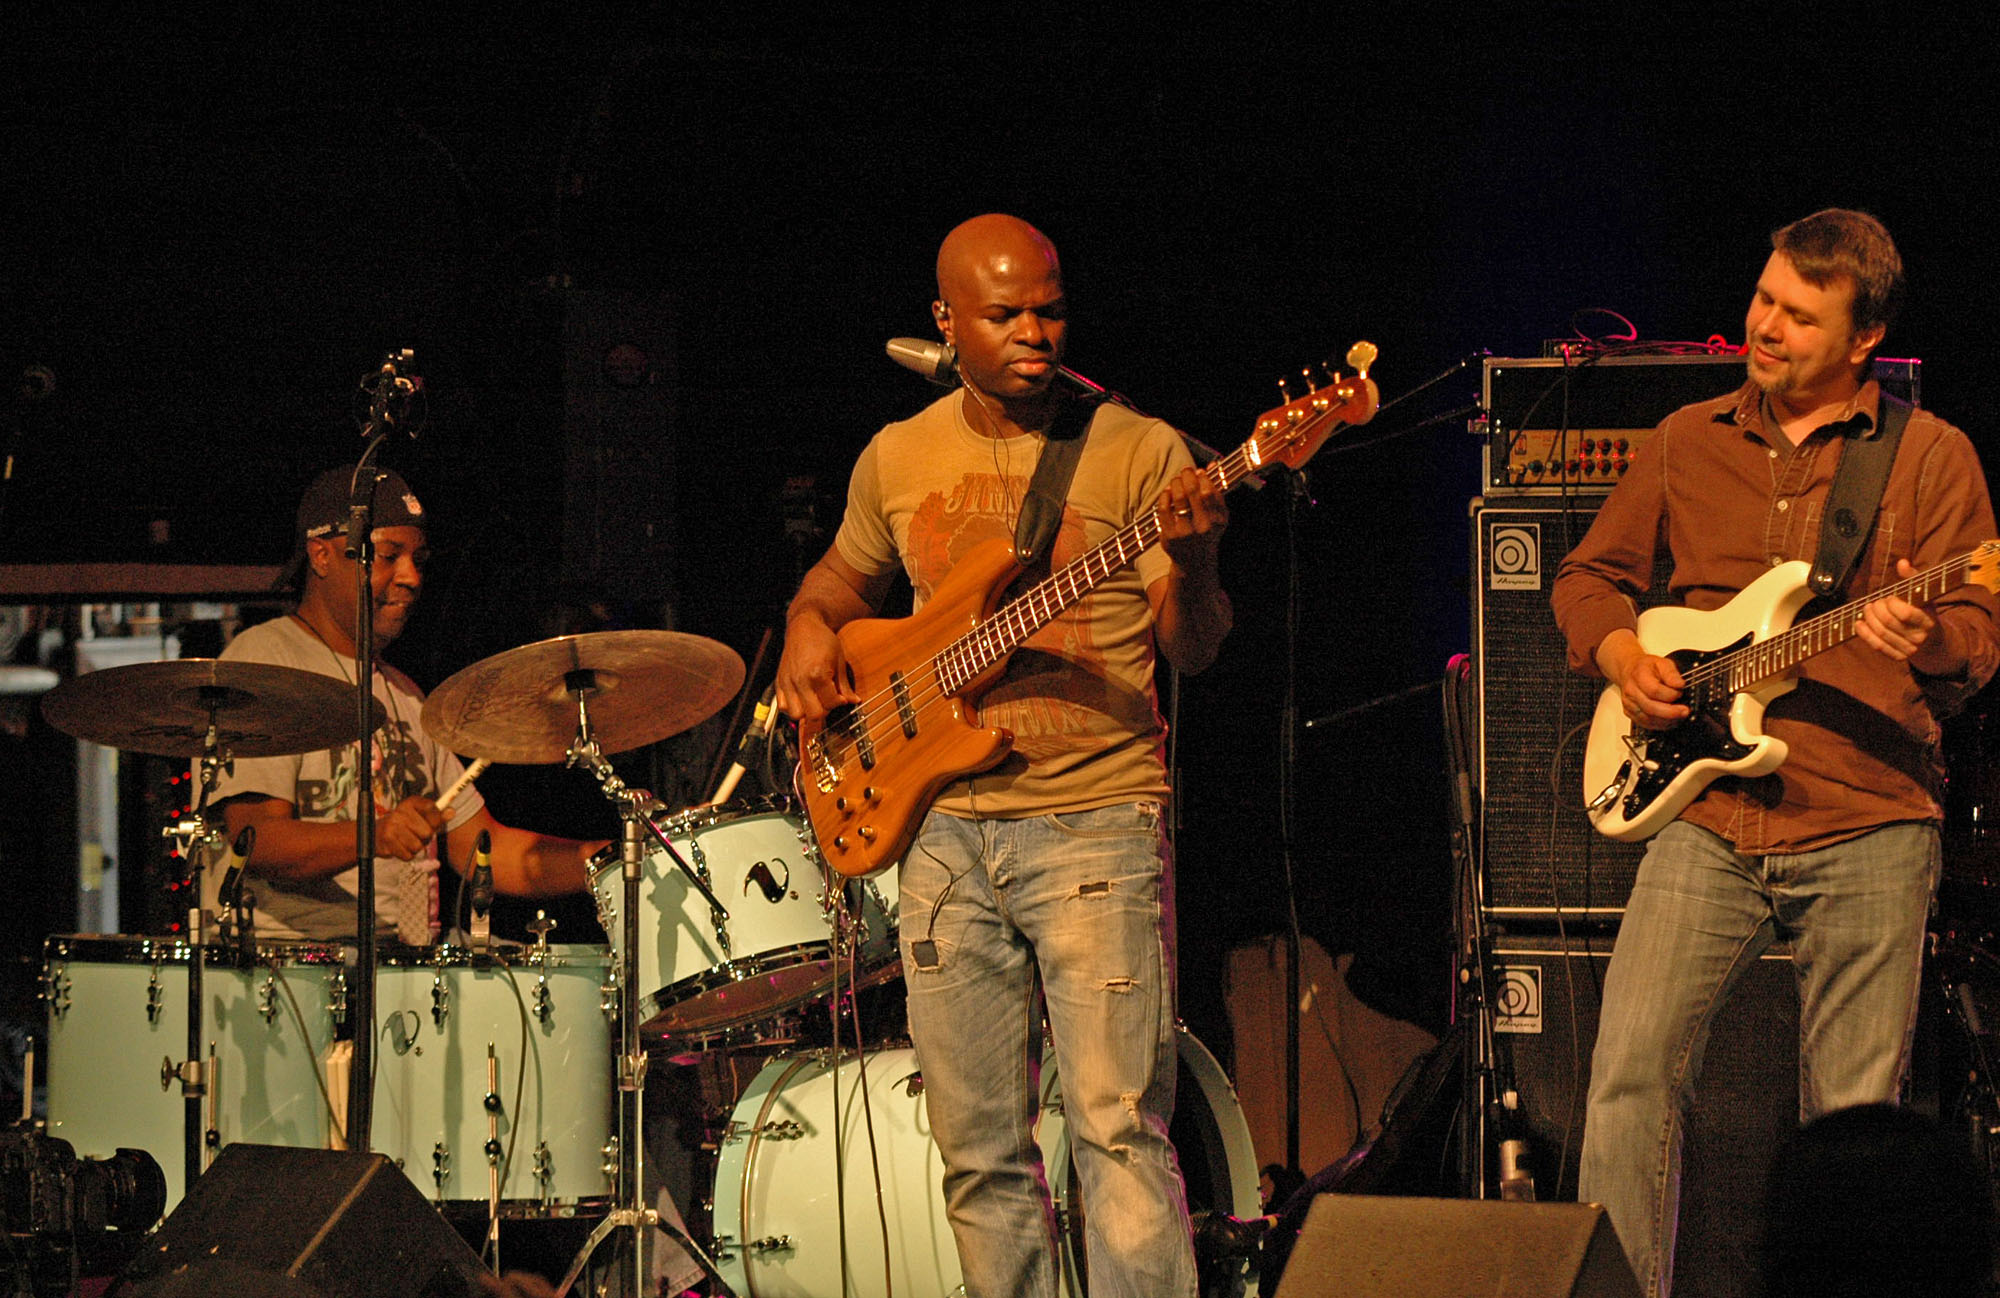 Lenny White, Riche Goods and Tom Guarna, Performing with Lenny White's Anomaly at the 2010 New Universe Music Festival